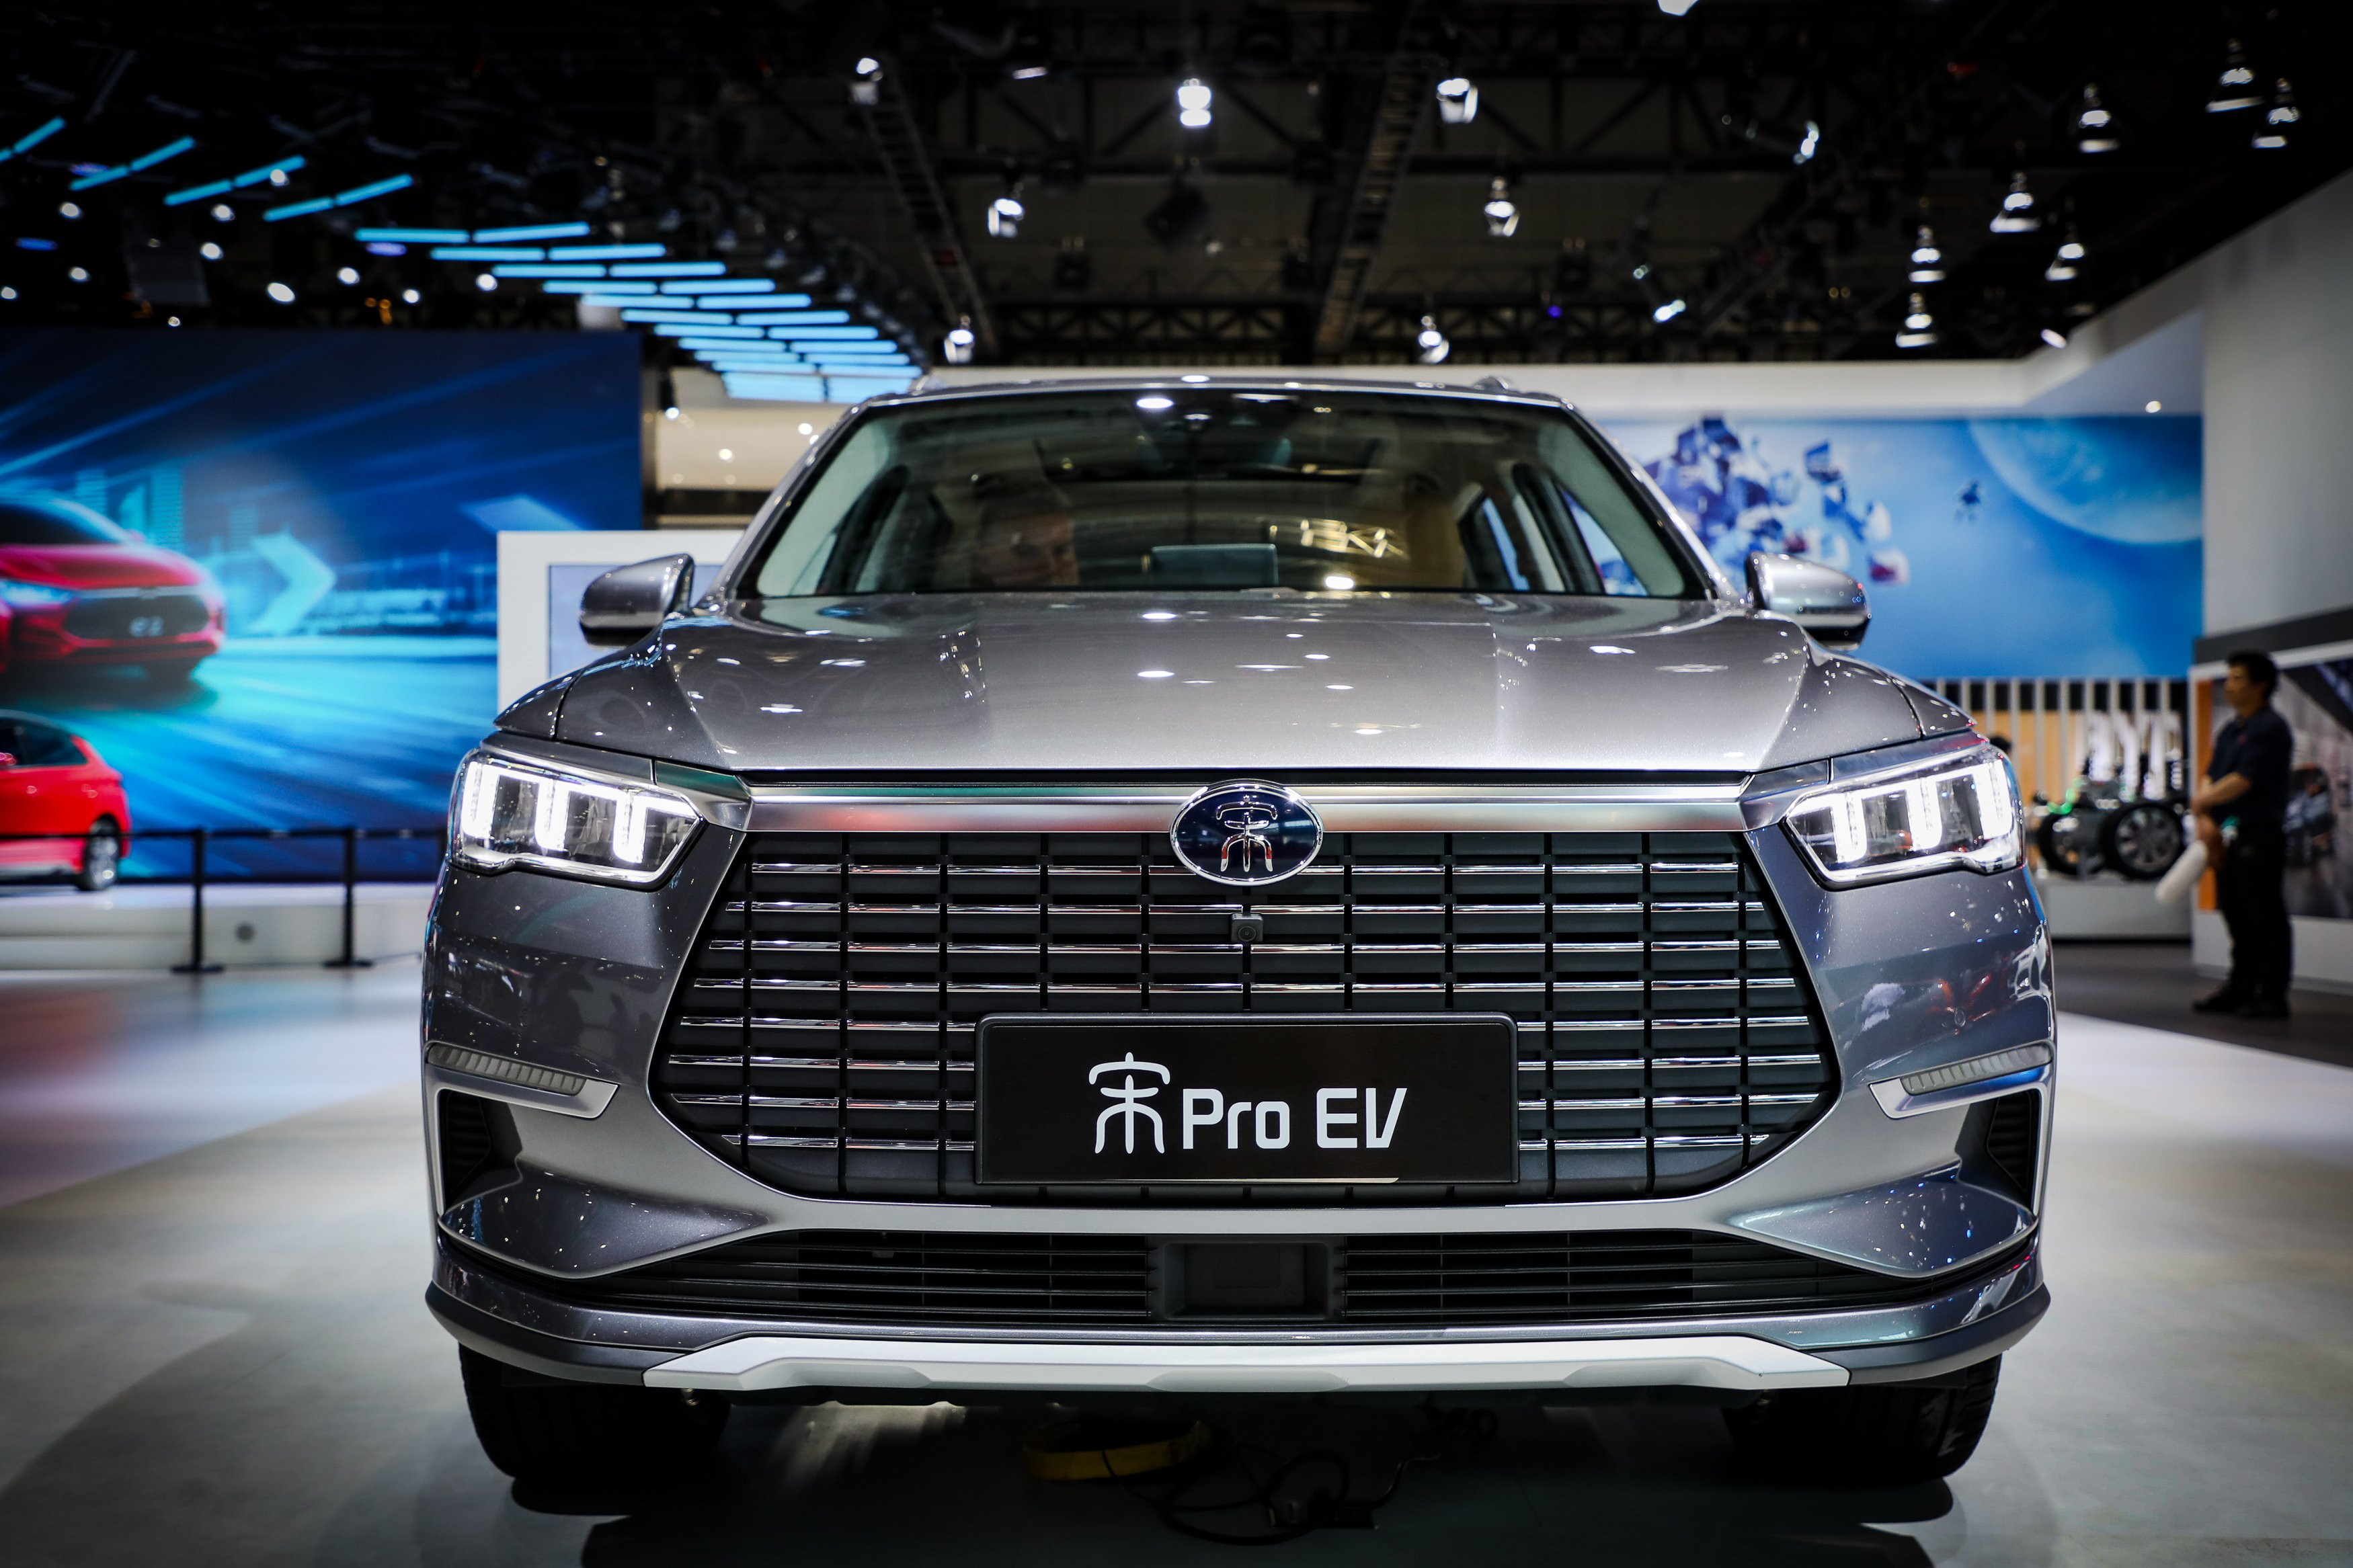 6 BYD Electric Vehicles At The 2019 Shanghai Auto Show